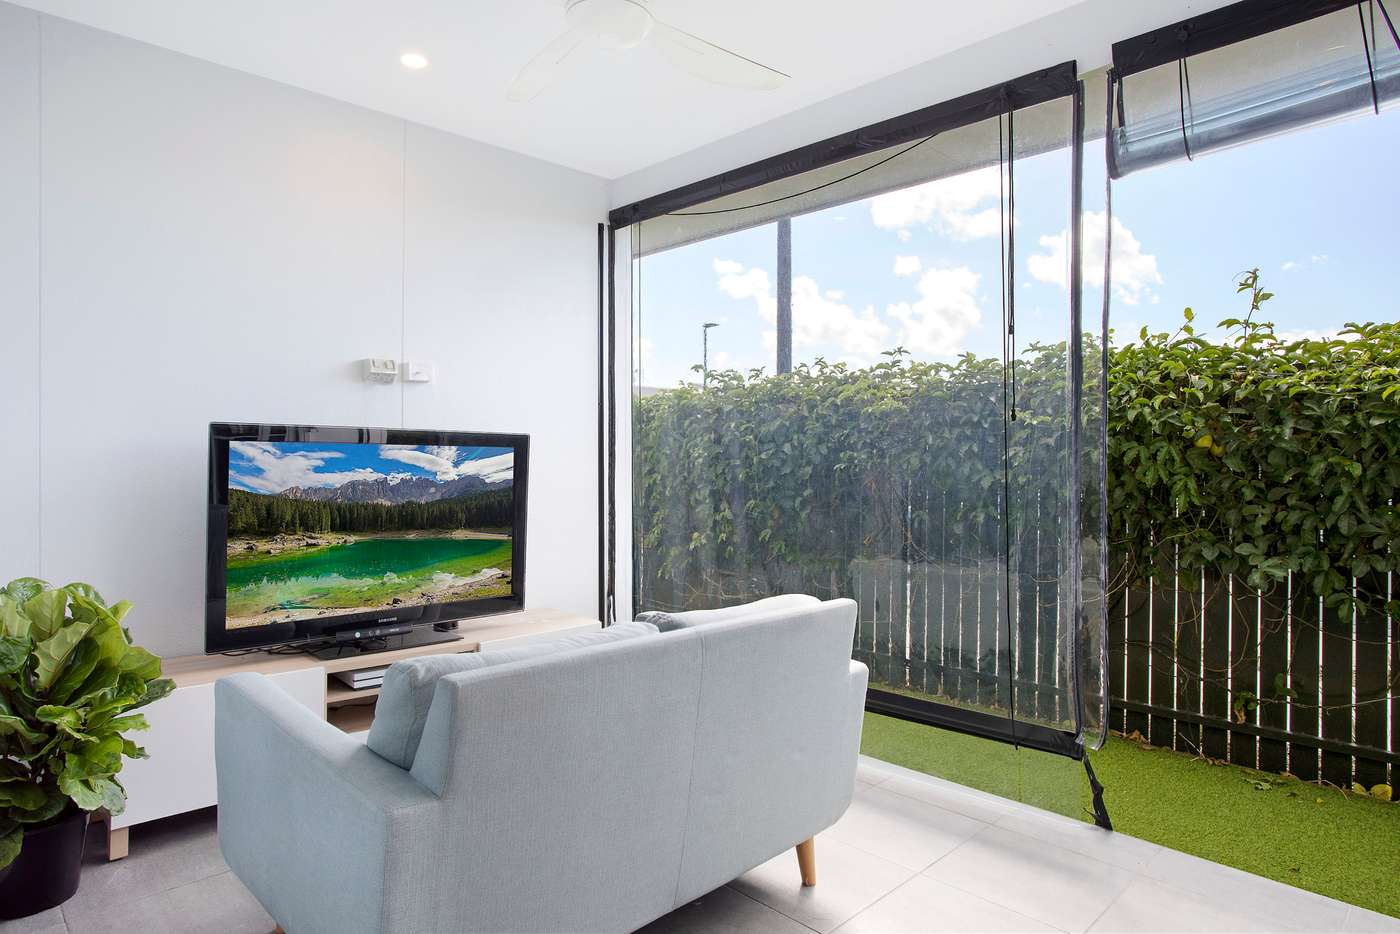 Fifth view of Homely house listing, 96 Tranquility Way, Palmview QLD 4553